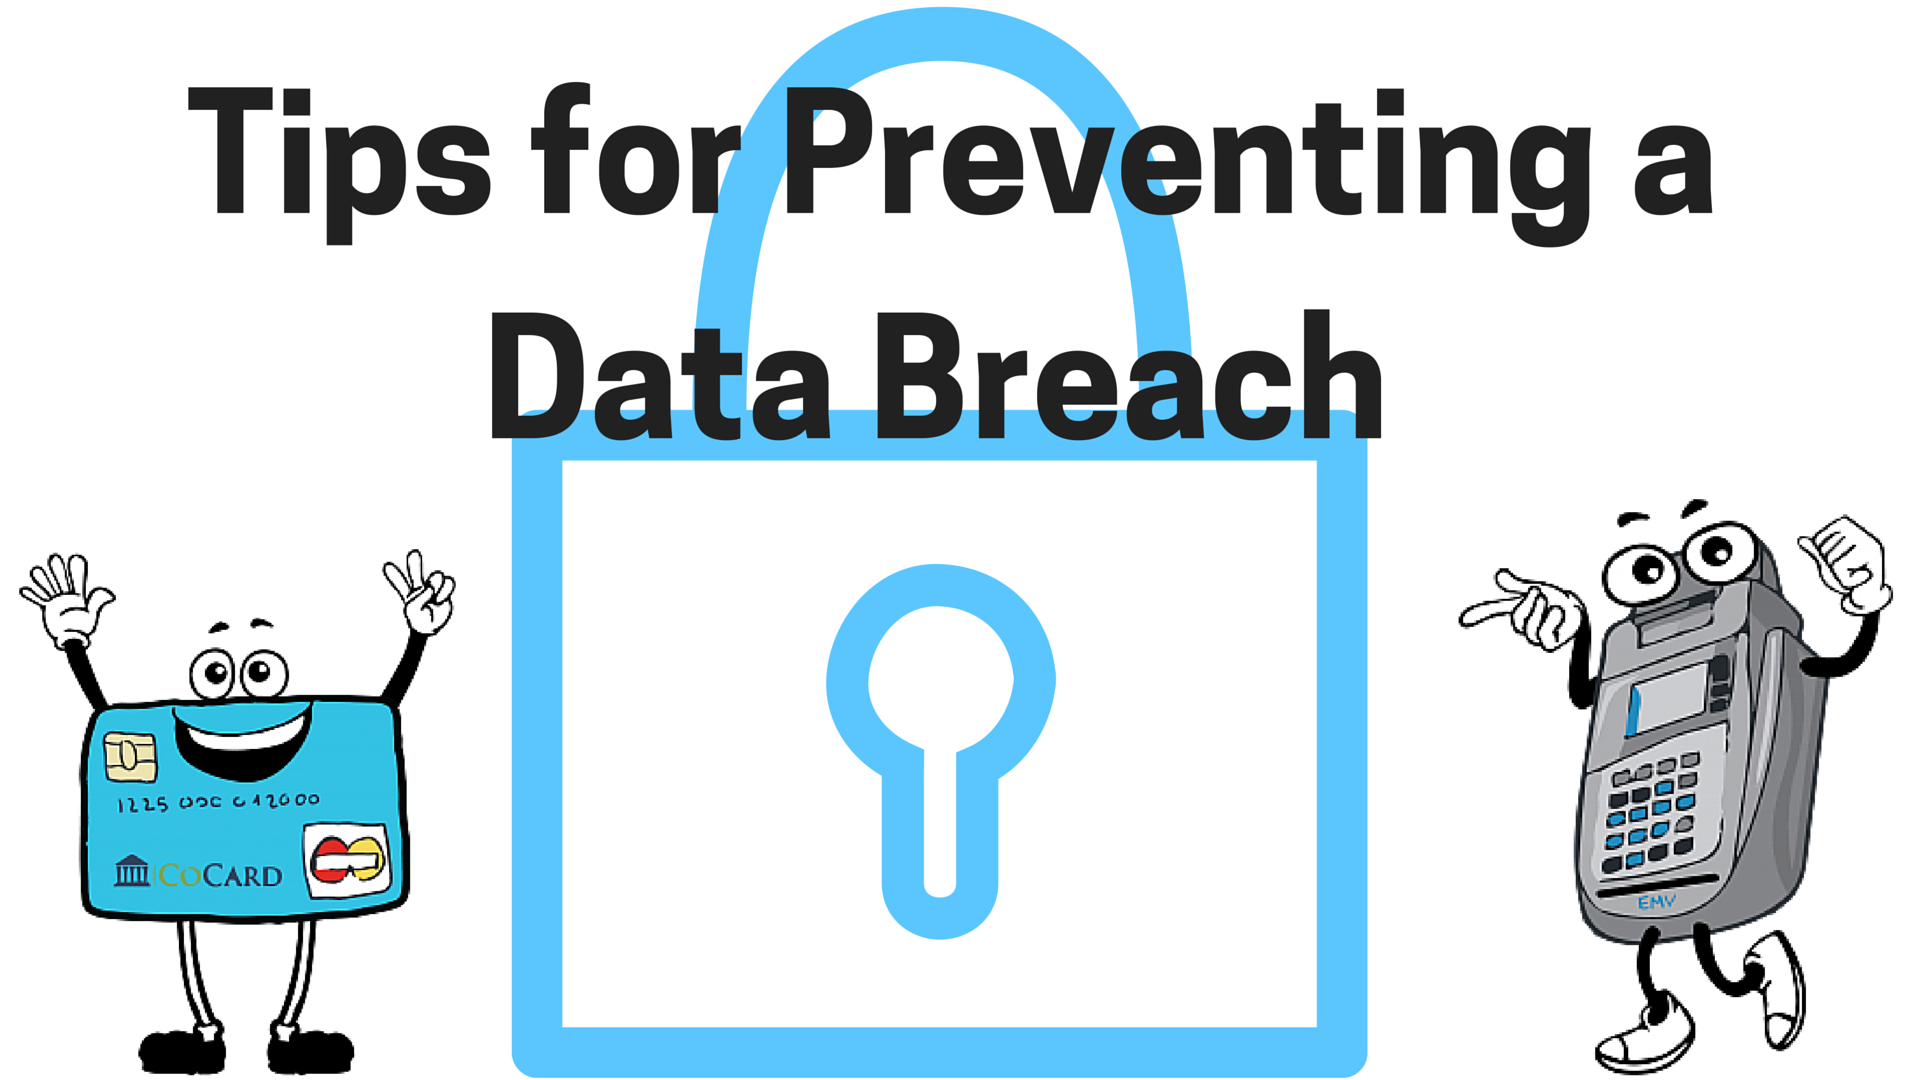 Tips for Preventing a Data Breach